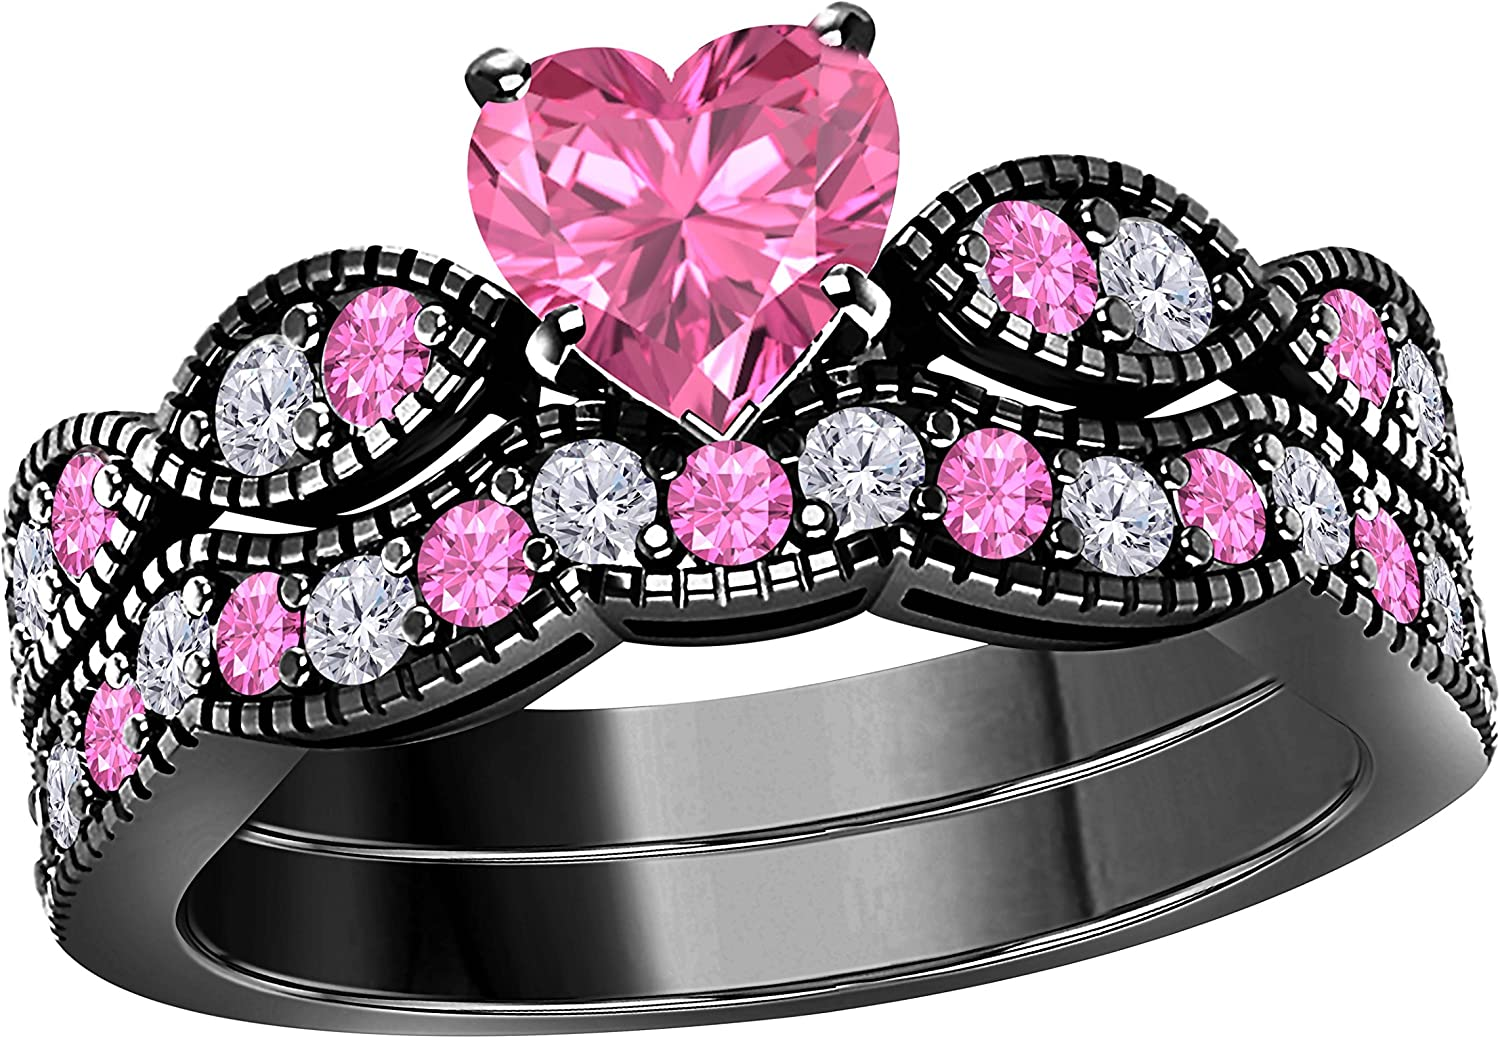 Gems Omaha Mall and Jewels 1.00 Ct Created Whit Shape Heart Pink Sapphire Kansas City Mall